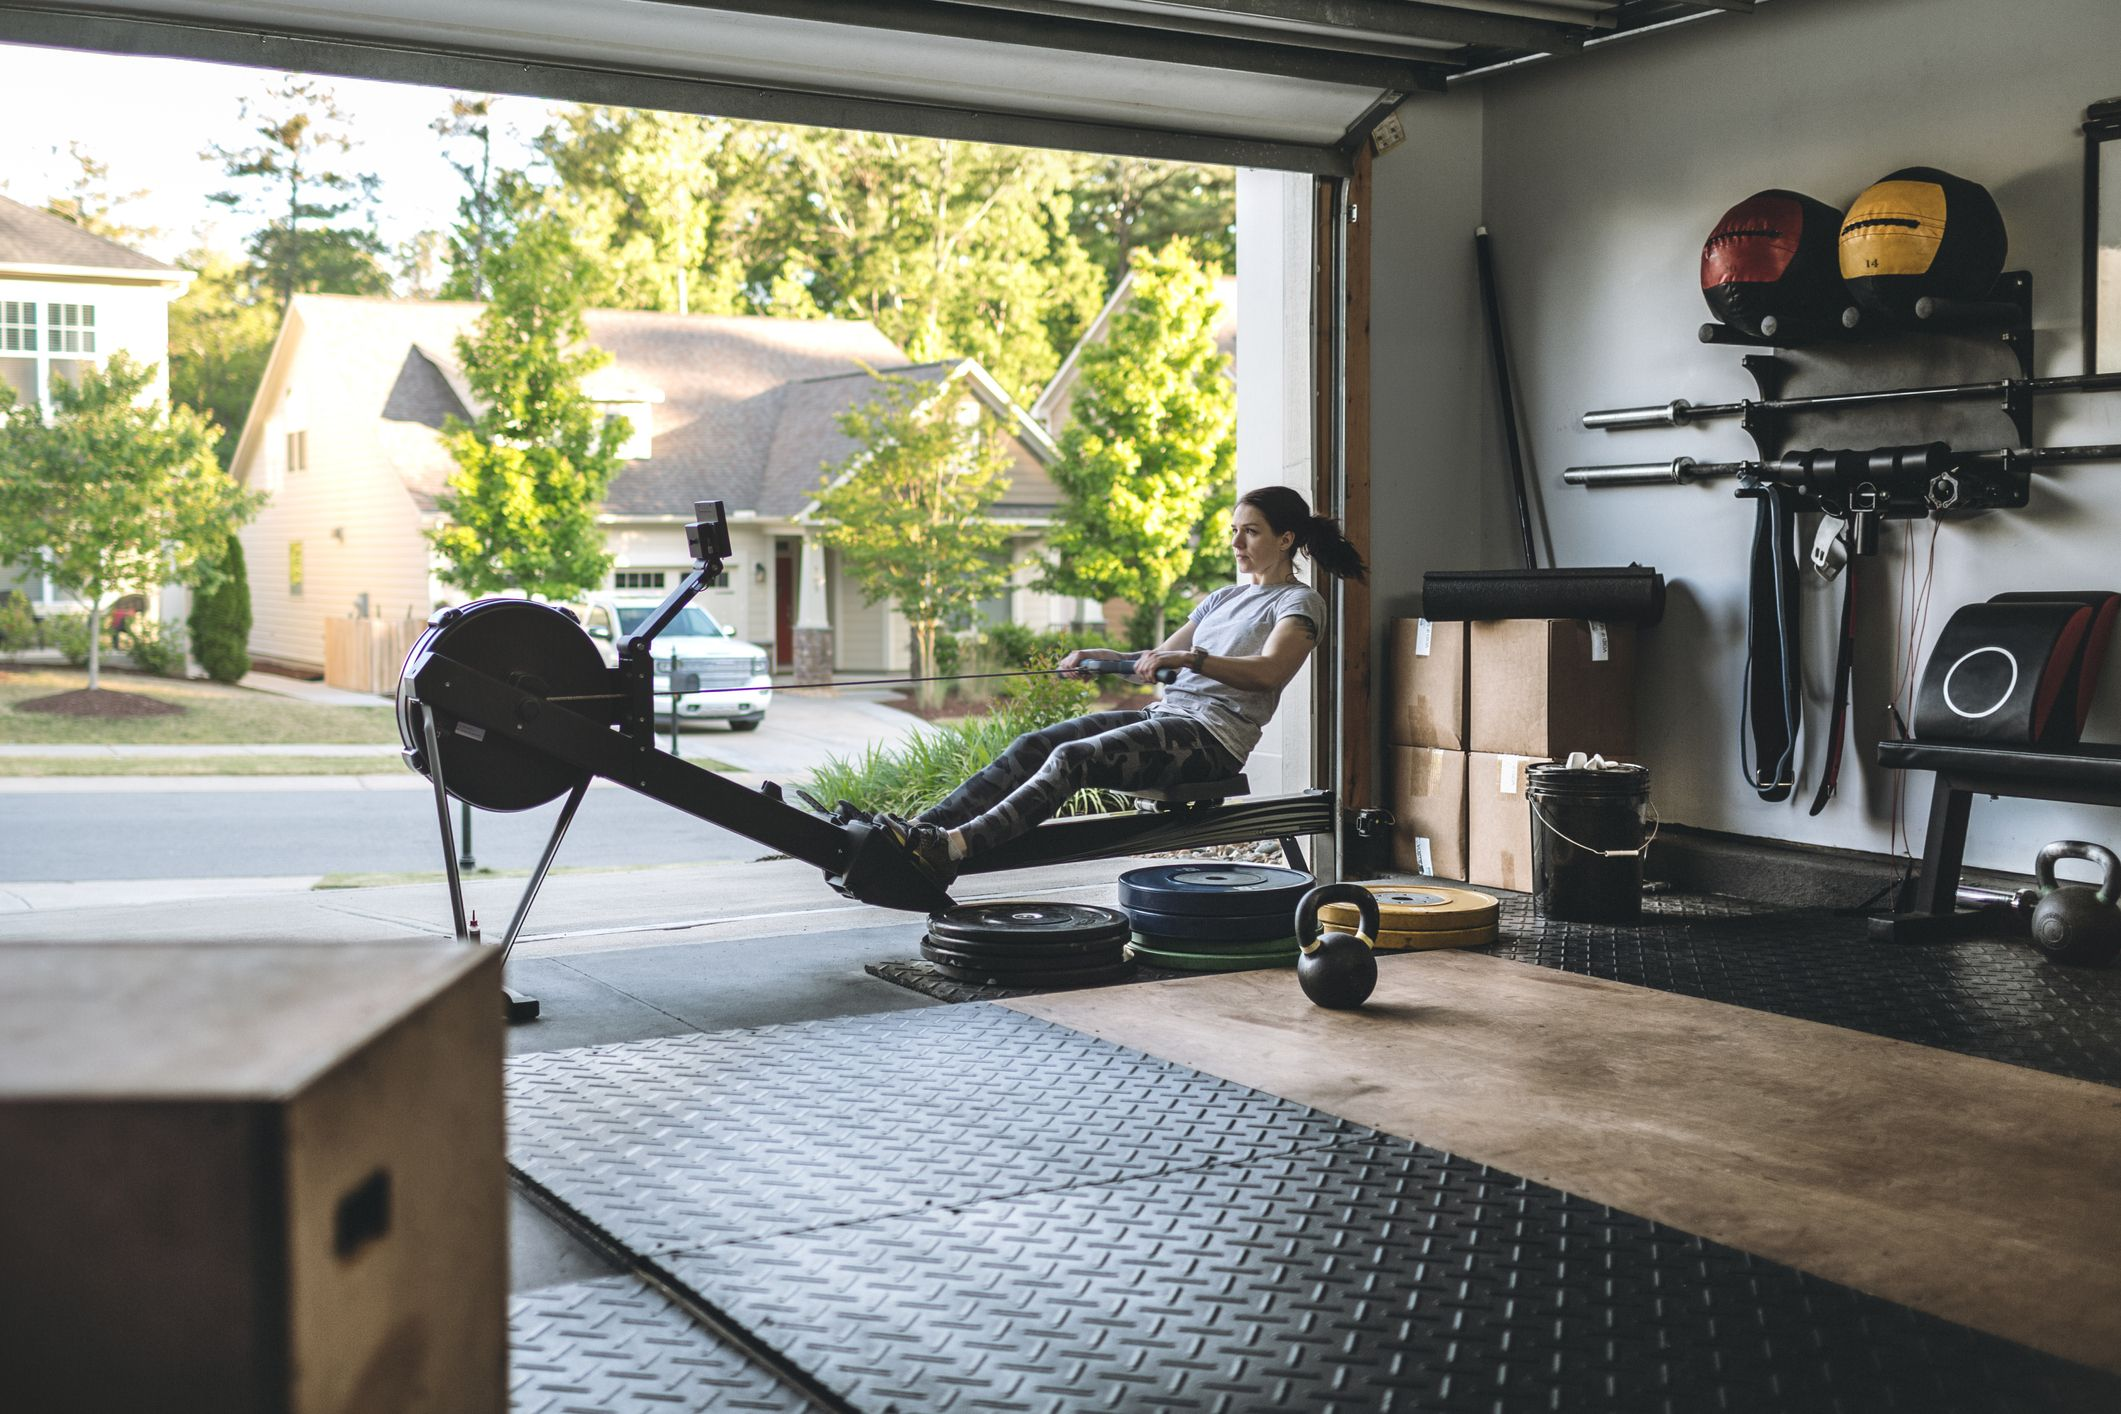 Best Home Gym Equipment of 2021 | Home Fitness Equipment